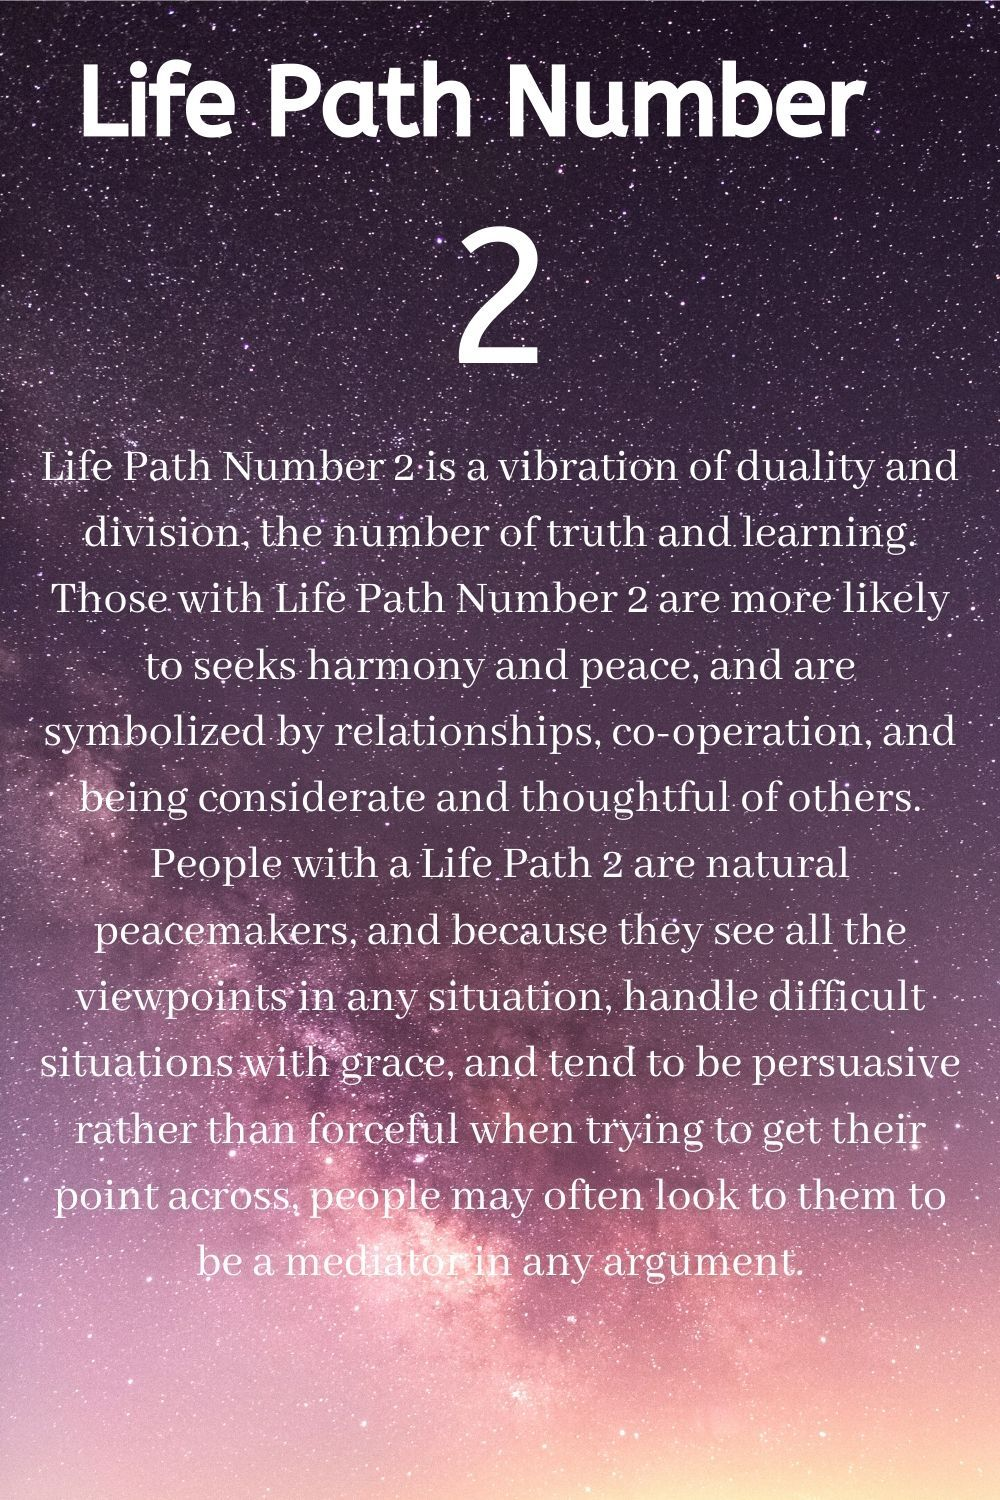 Life Path Number 2 Numerology In 2020 Numerology Life Path Life Path Number Life Path